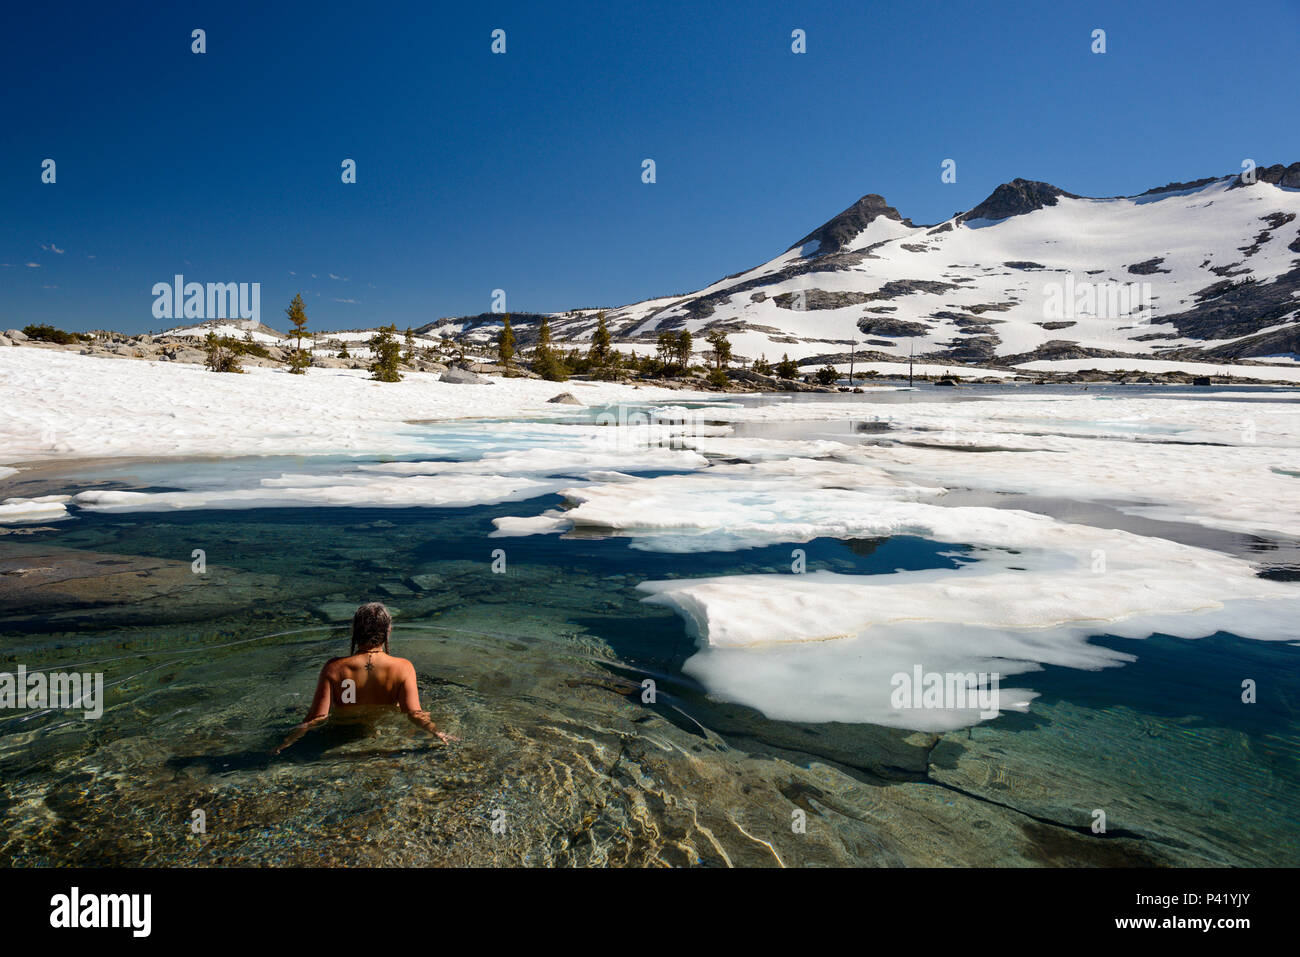 A woman swims in the ice covered waters of Lake Aloha in the Desolation wilderness area in south lake tahoe. - Stock Image